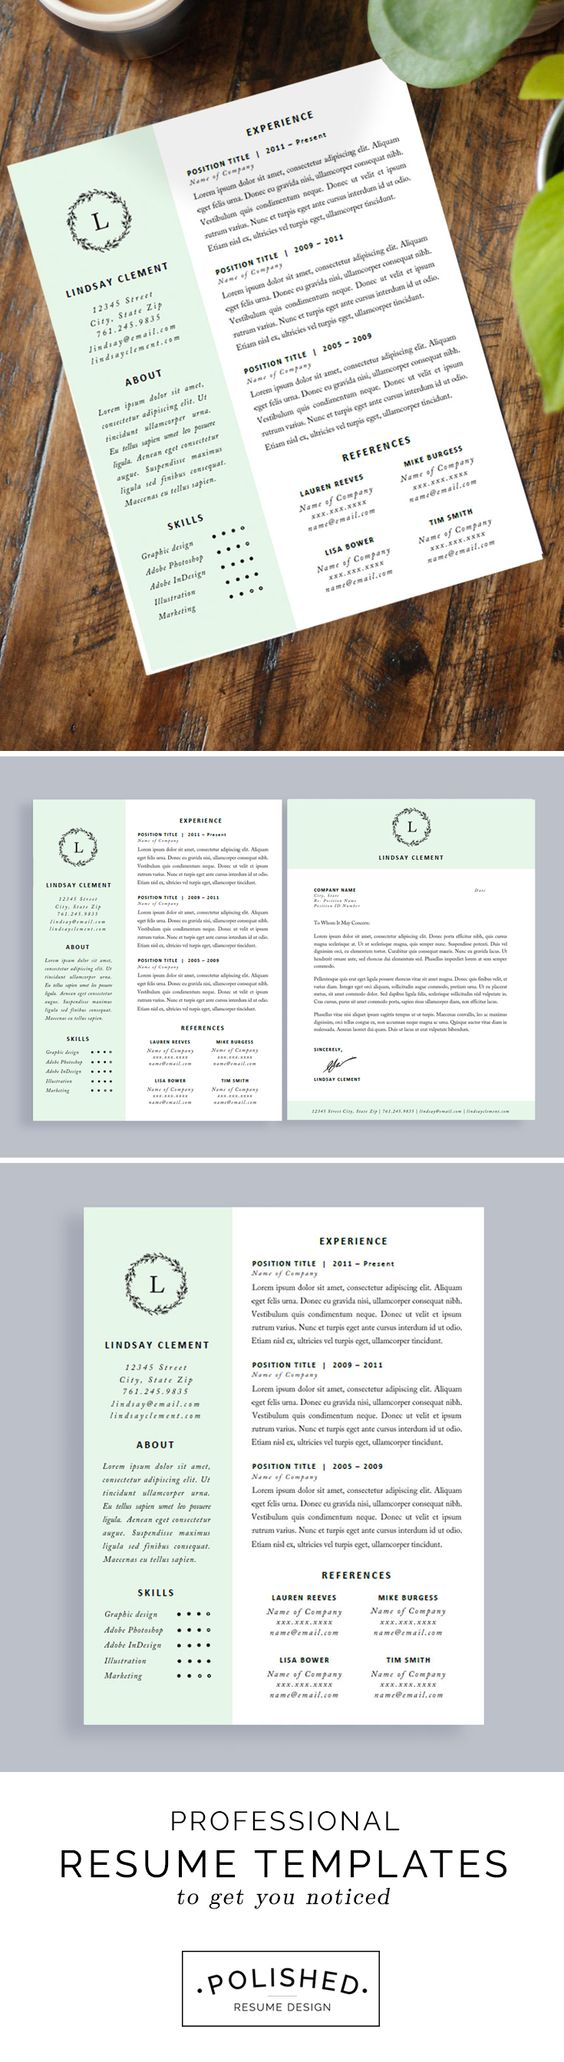 professional resume template and cover letter for word and pages professional resume templates for microsoft word features 1 and 2 page options plus a